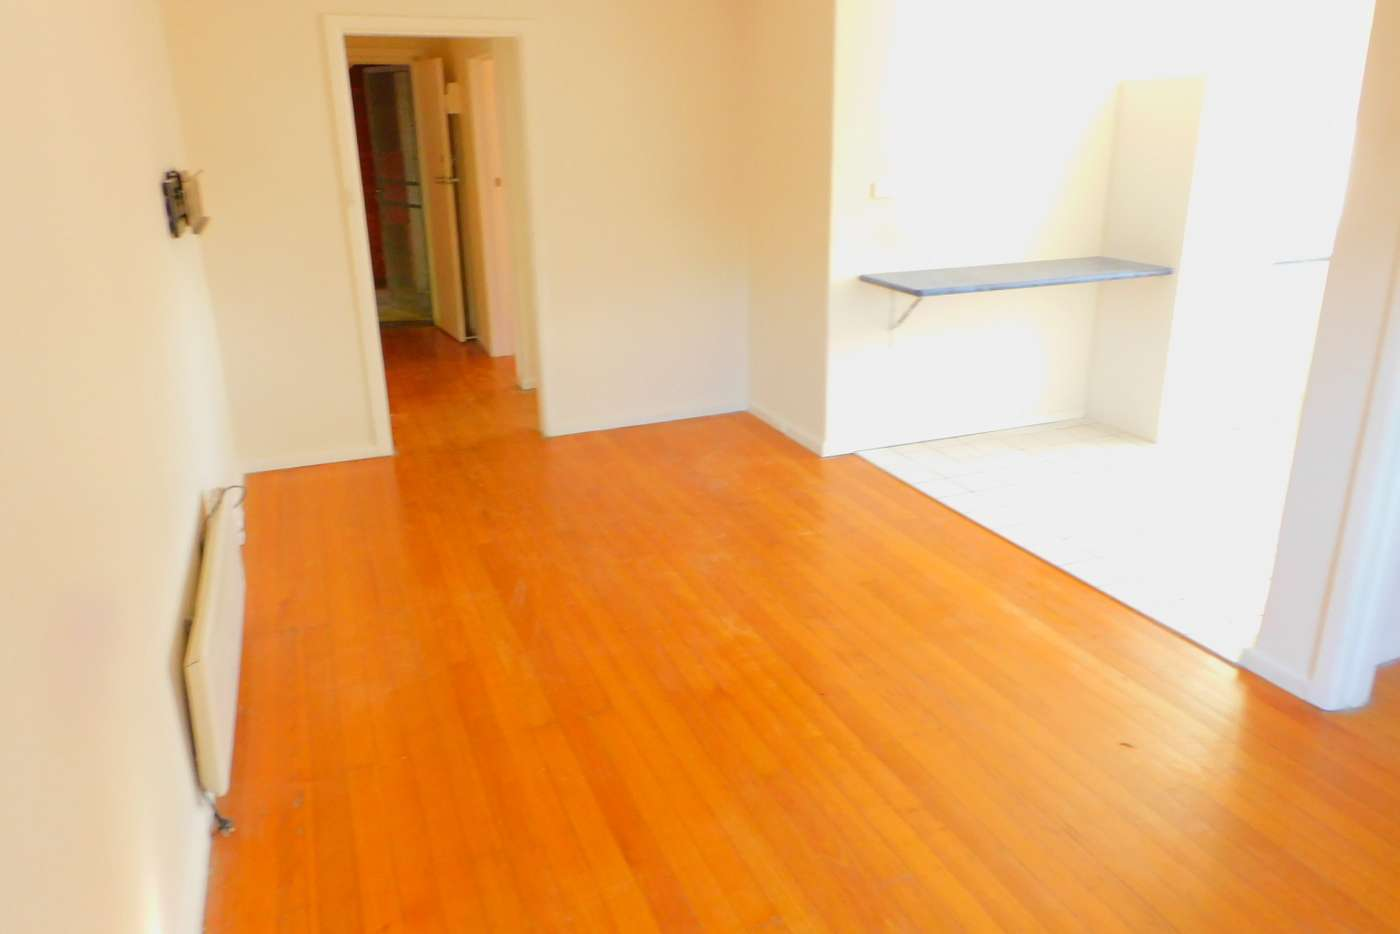 Sixth view of Homely house listing, 1/564 Pascoe Vale Rd., Oak Park VIC 3046